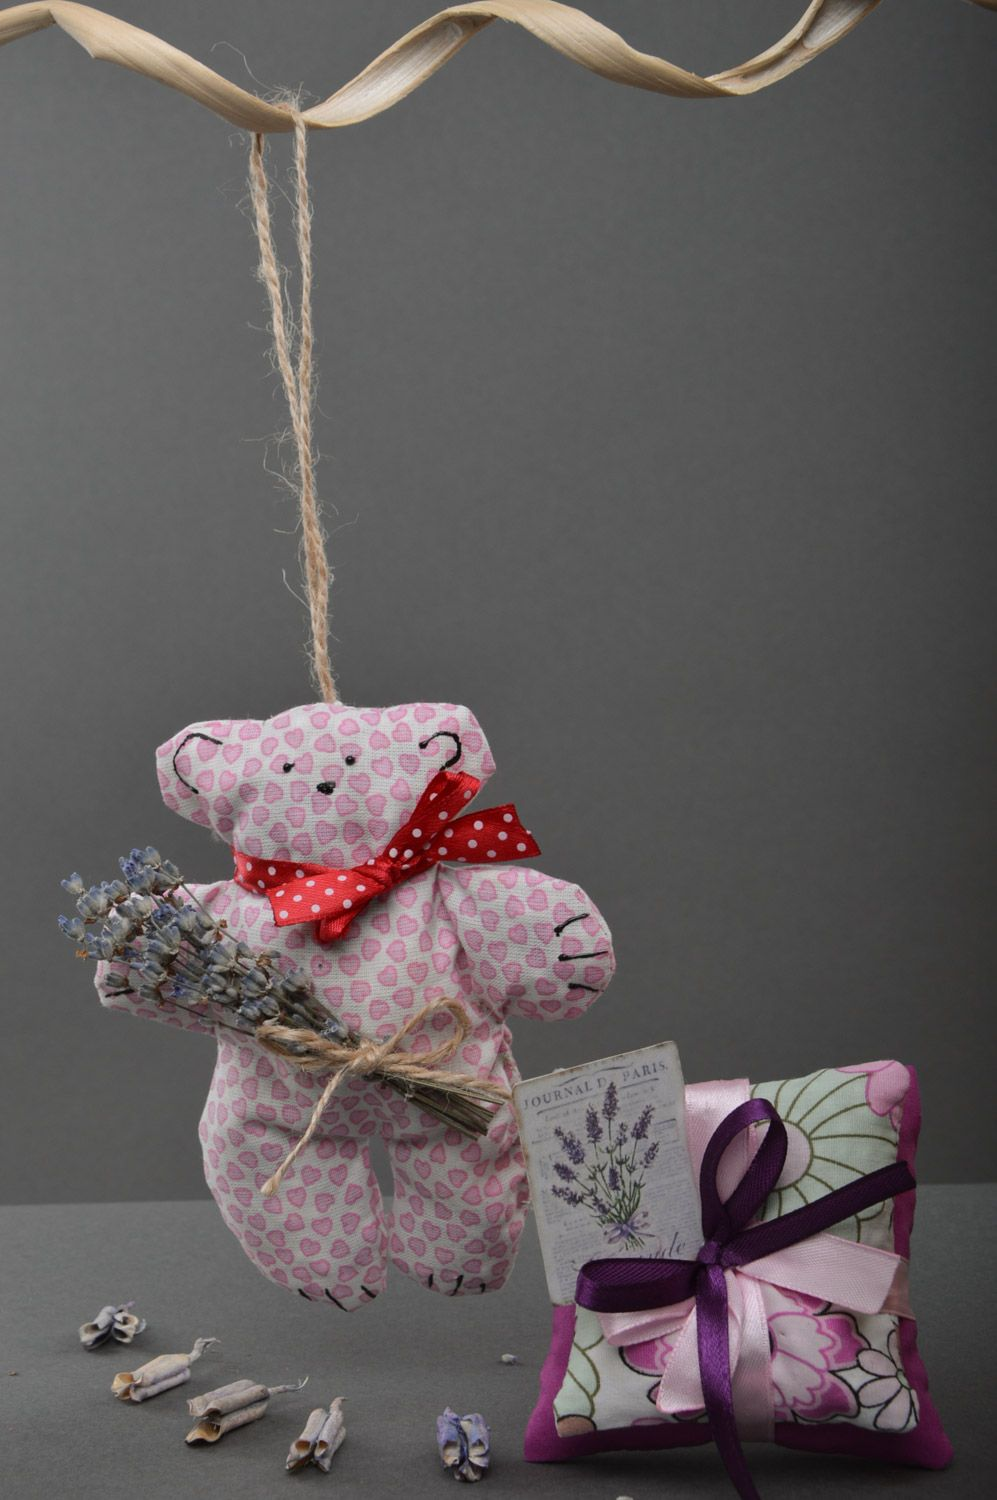 Set of handmade sachet pillows with herbs and soft fabric toy bear 3 items photo 1